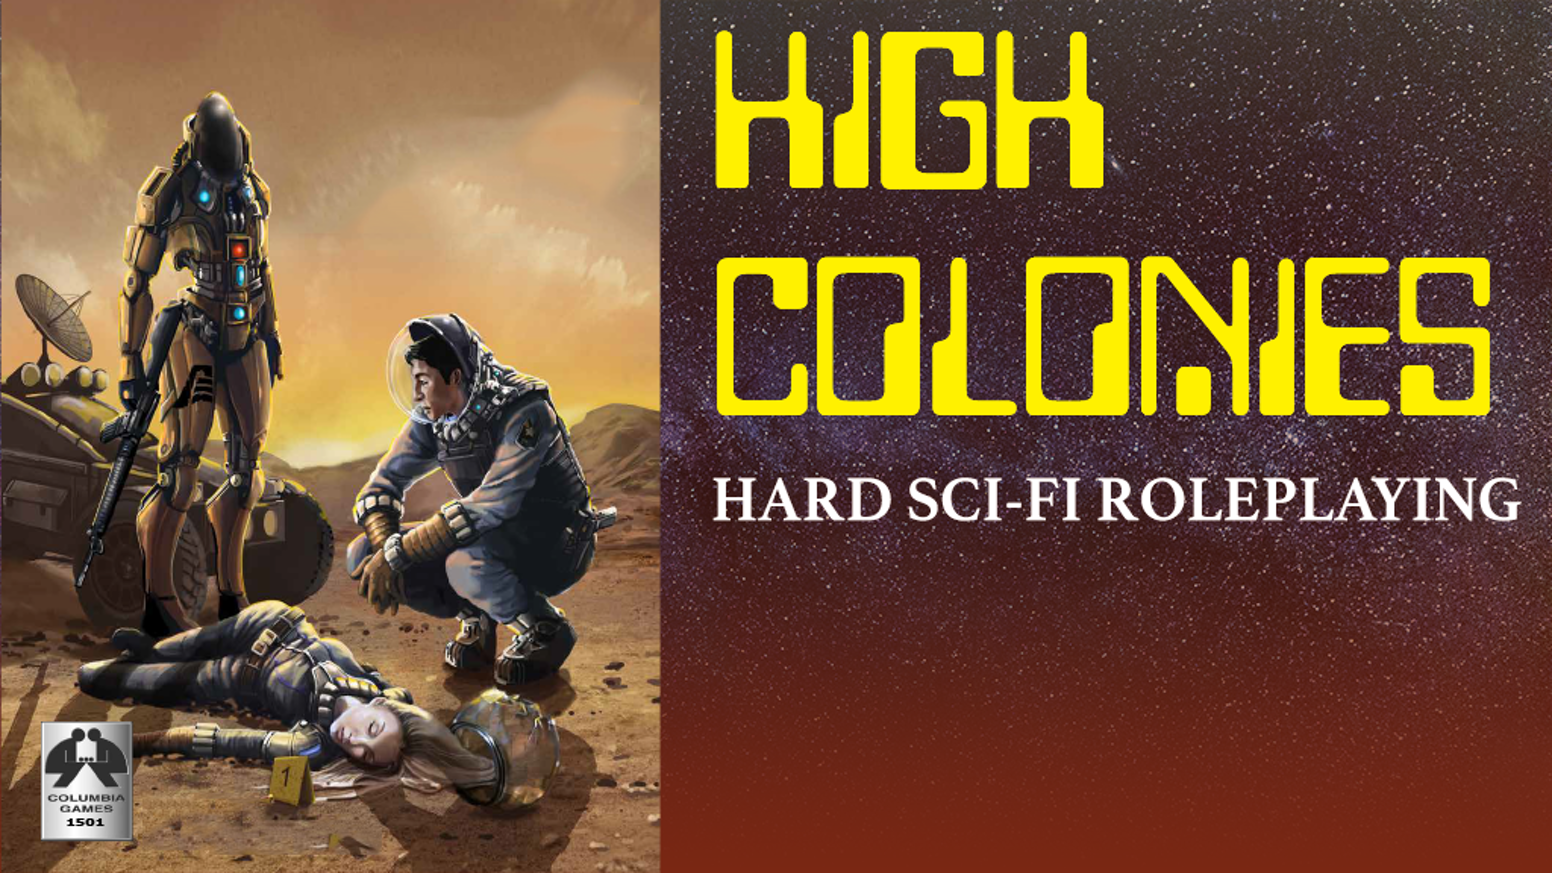 Hard Science Fiction RPG 23rd Century